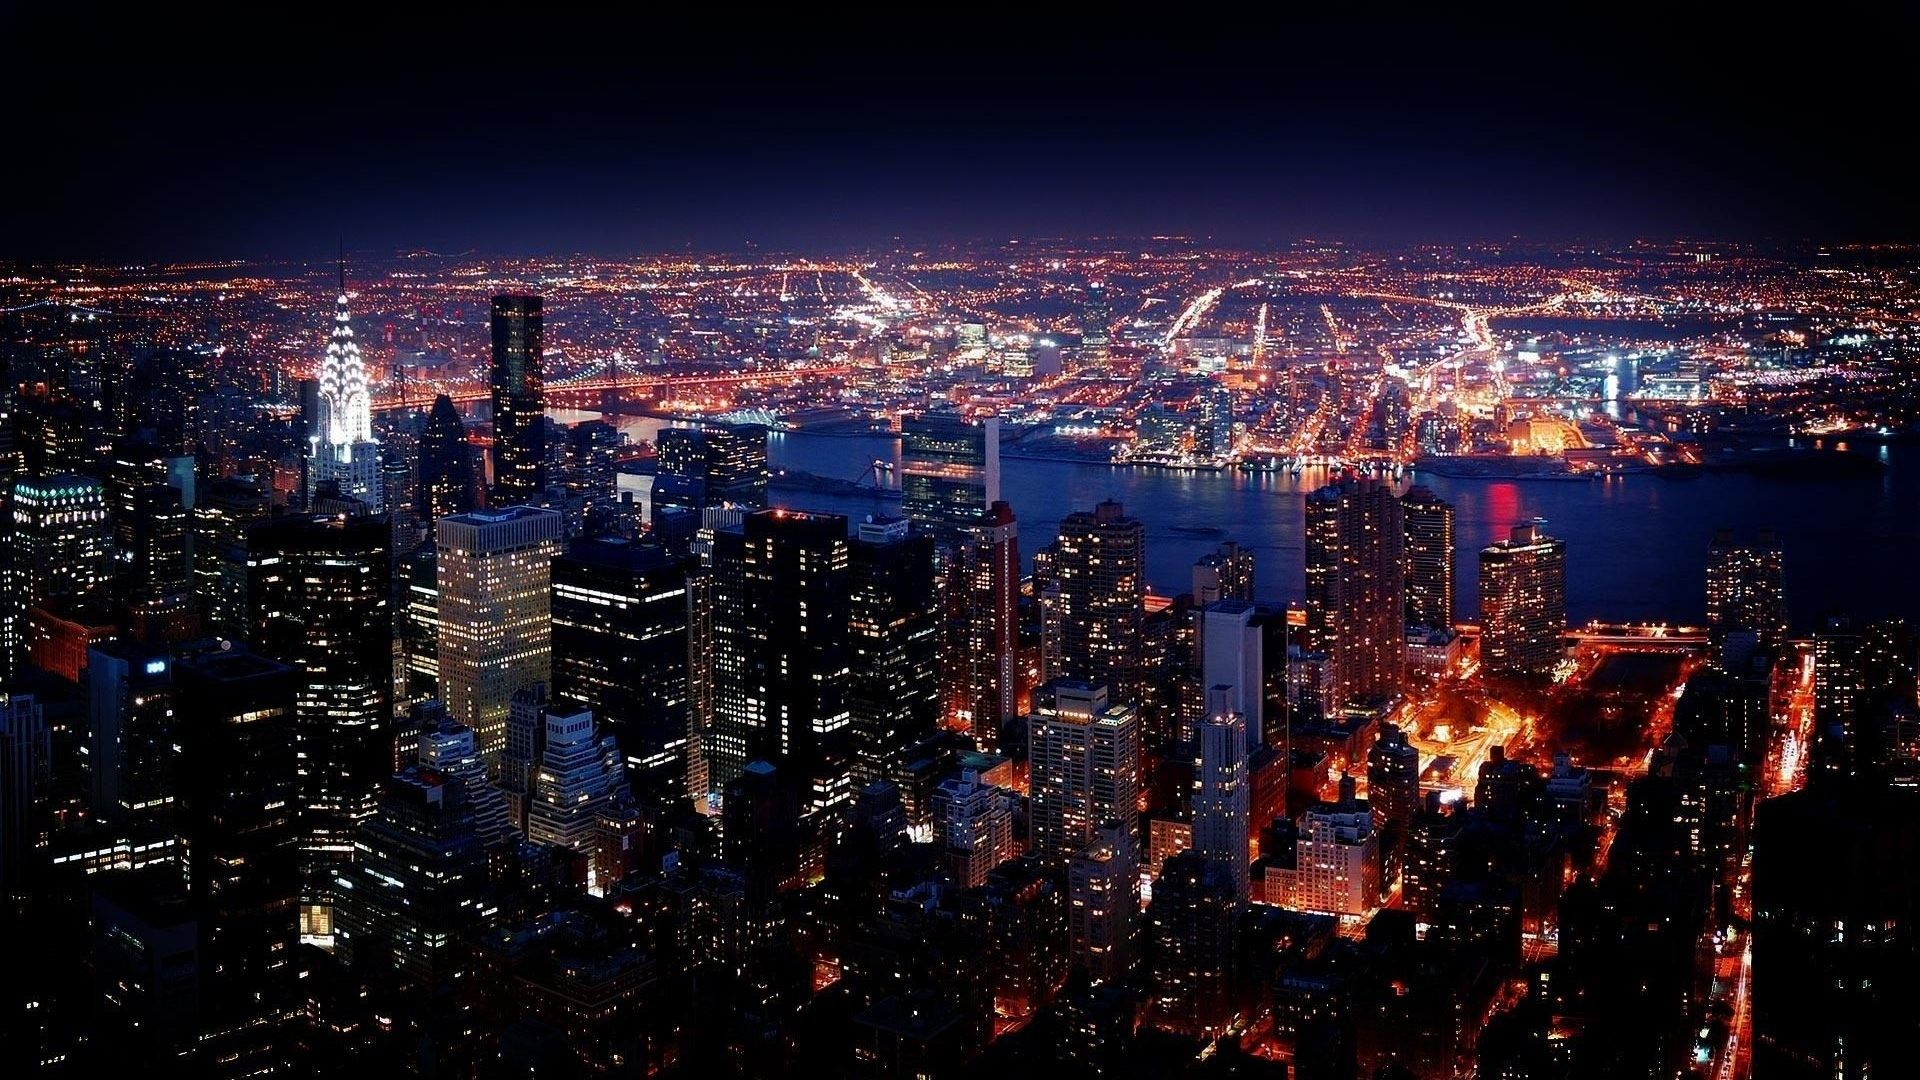 New York Wallpaper Hd Night